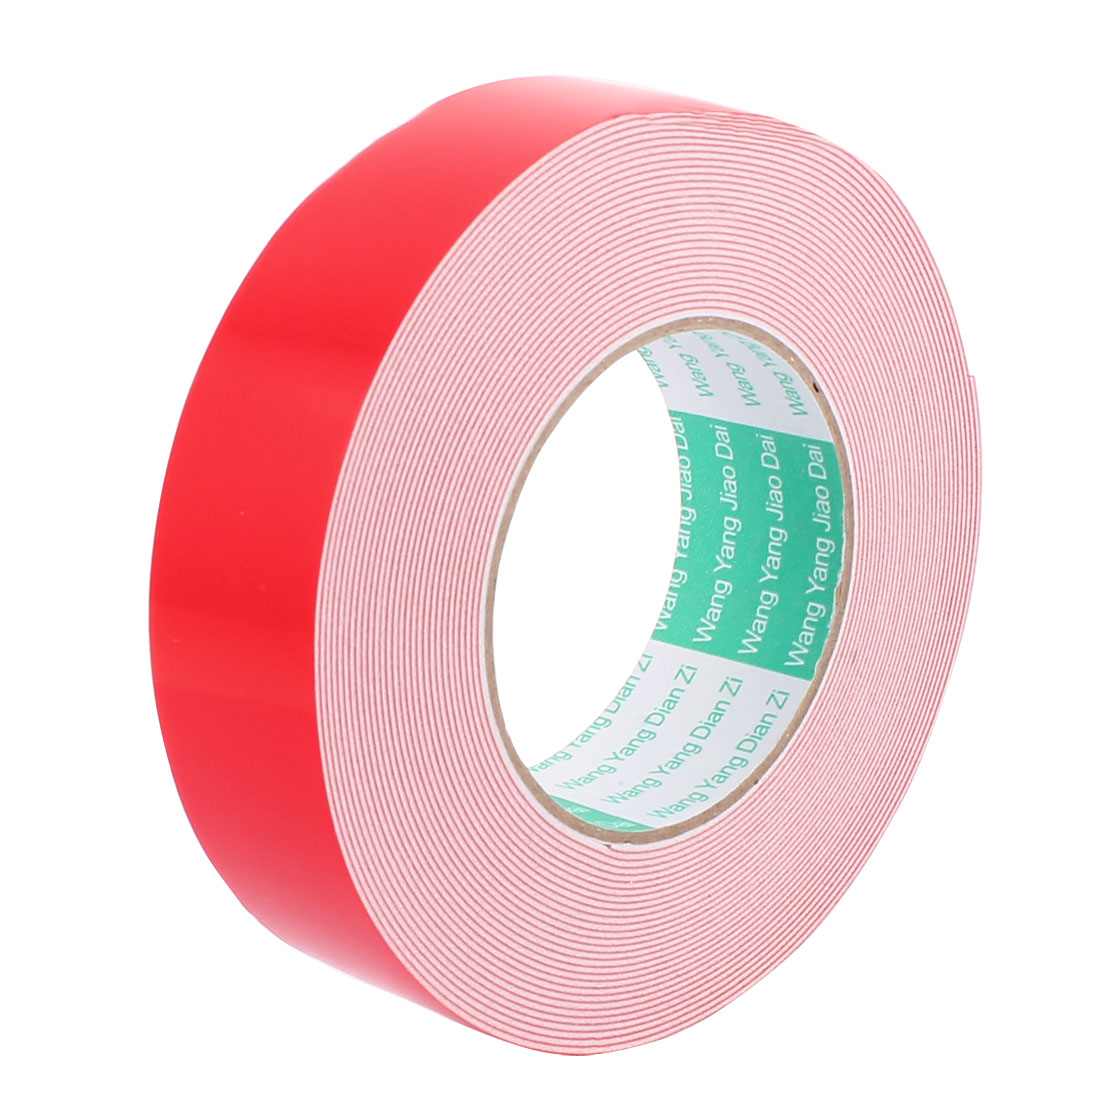 35MM Width 10M Long 1MM Thick White Dual Sided Waterproof Sponge Tape for Car